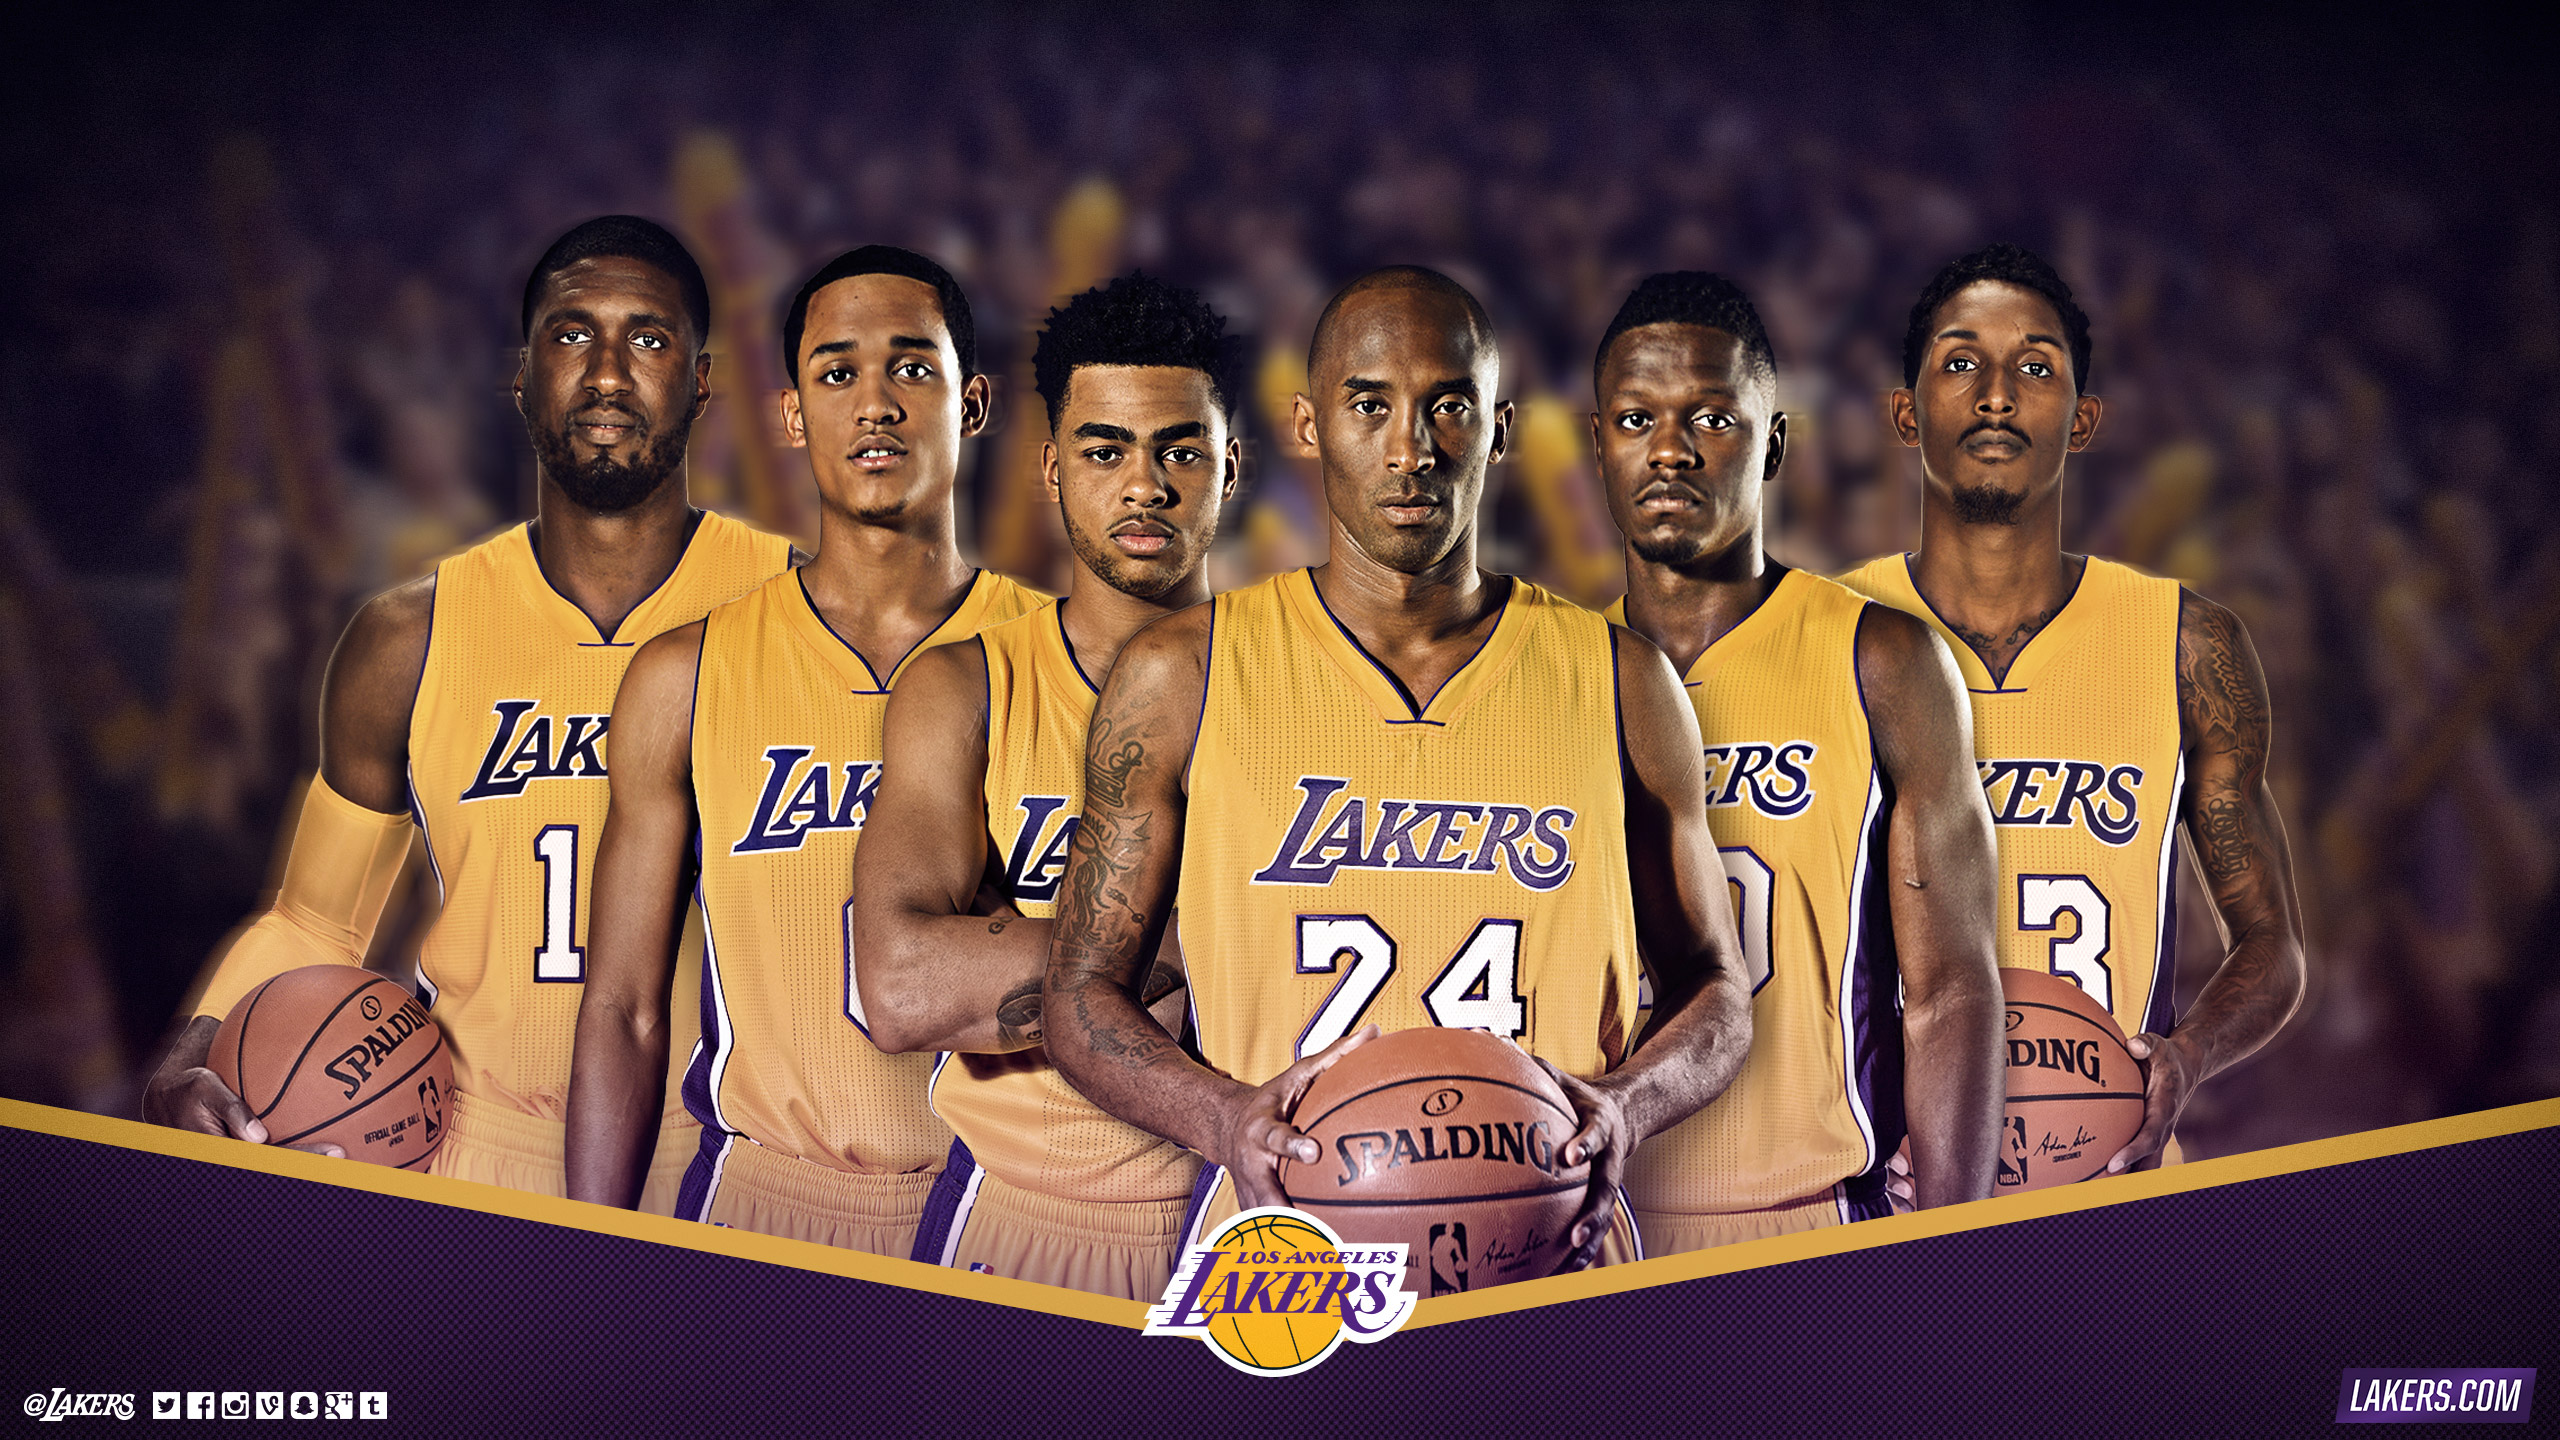 Lakers Wallpaper 2016 Wallpapersafari